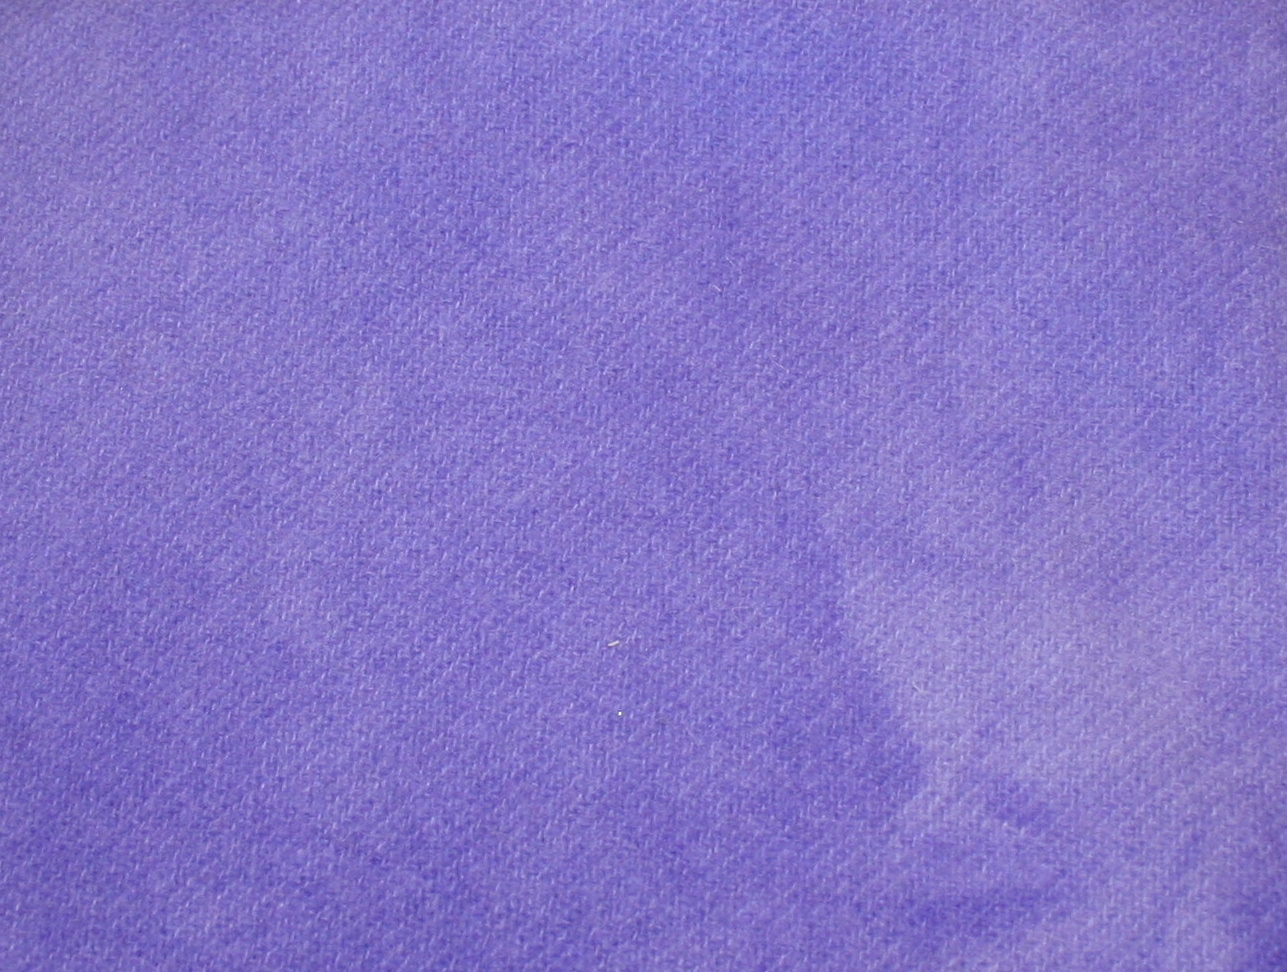 Violet Hand Dyed 100% Wool Part of the Vineyard Collection